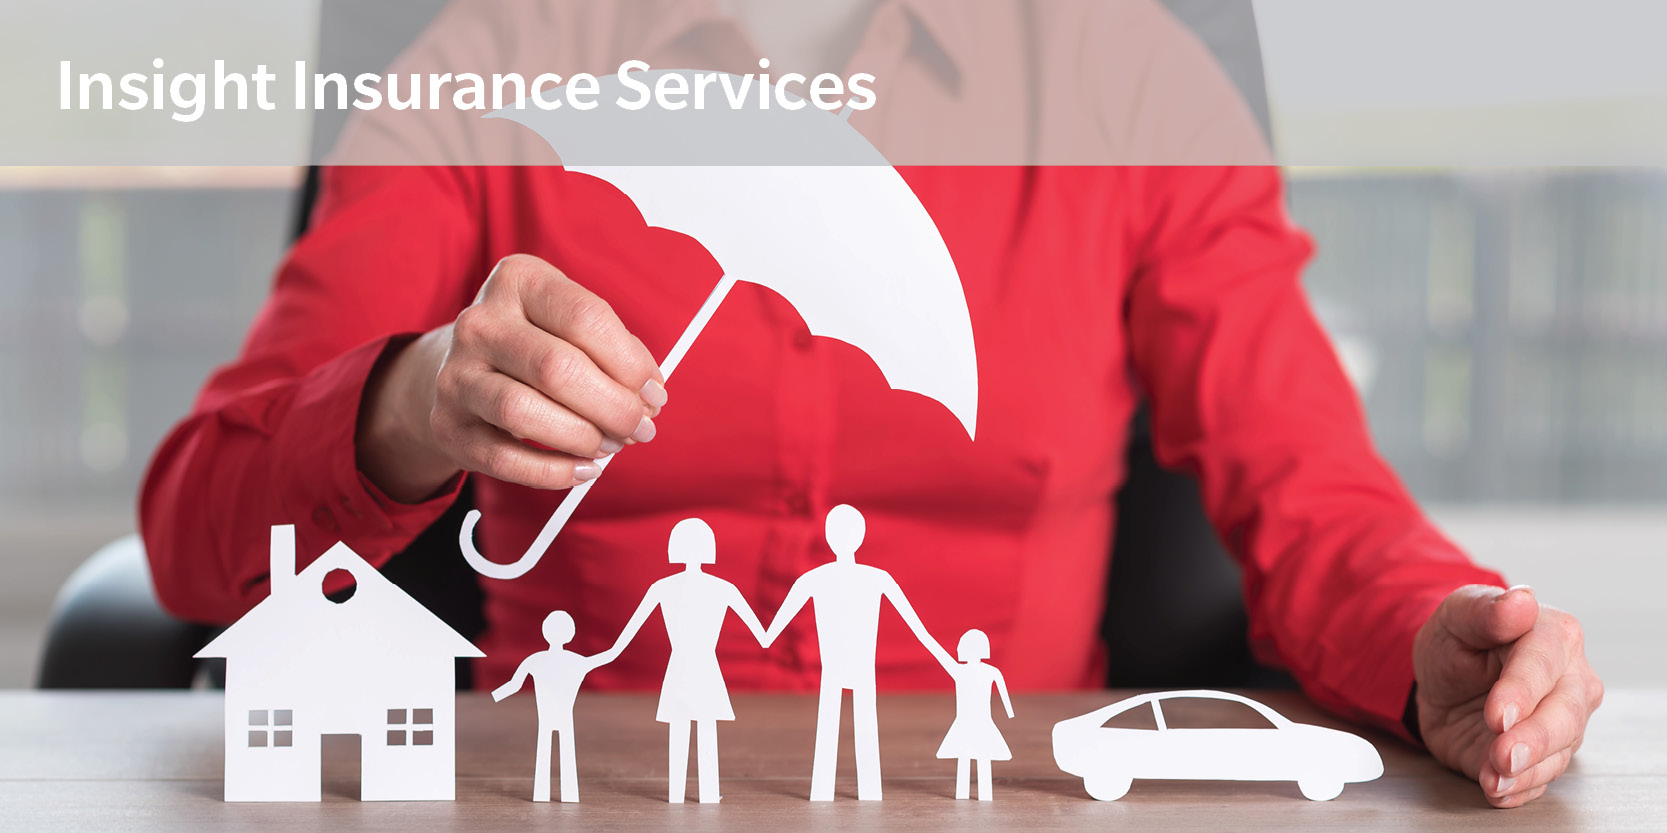 Insight Insurance Services